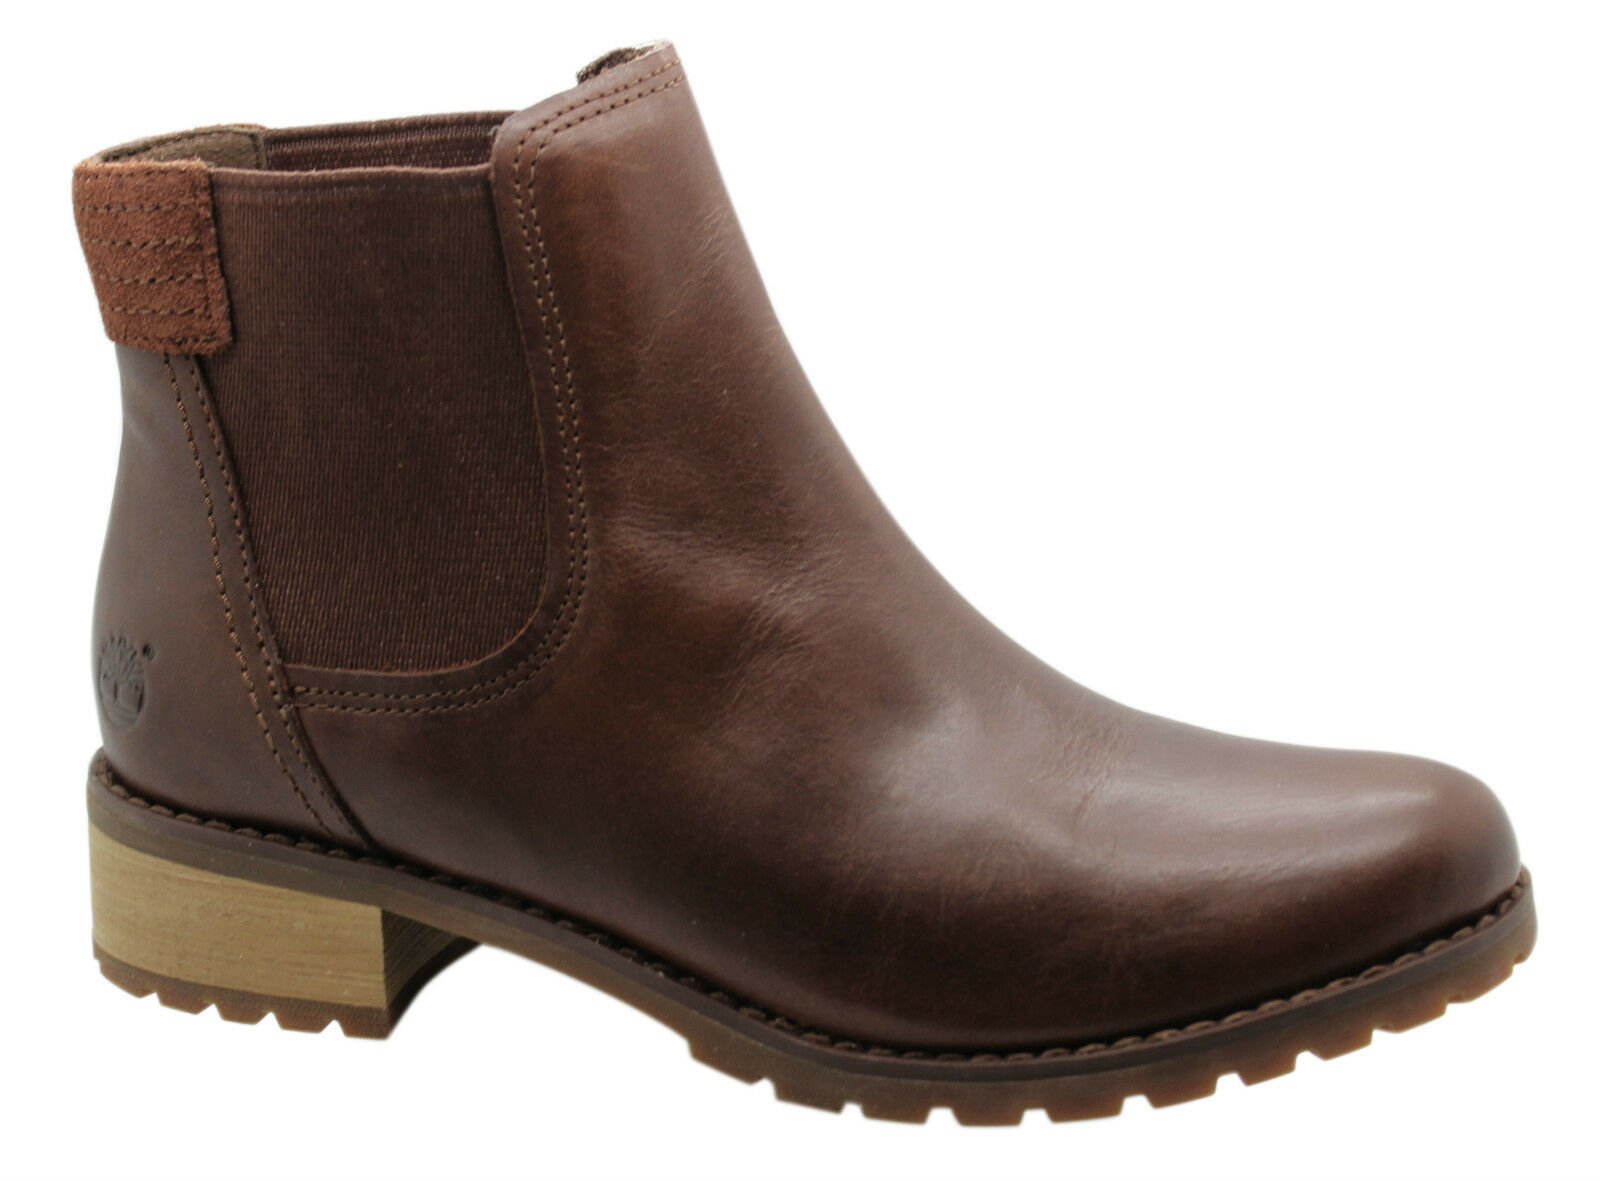 Model Timberland Willowood Winter Snow Waterproof Womens Boots Brown Leather